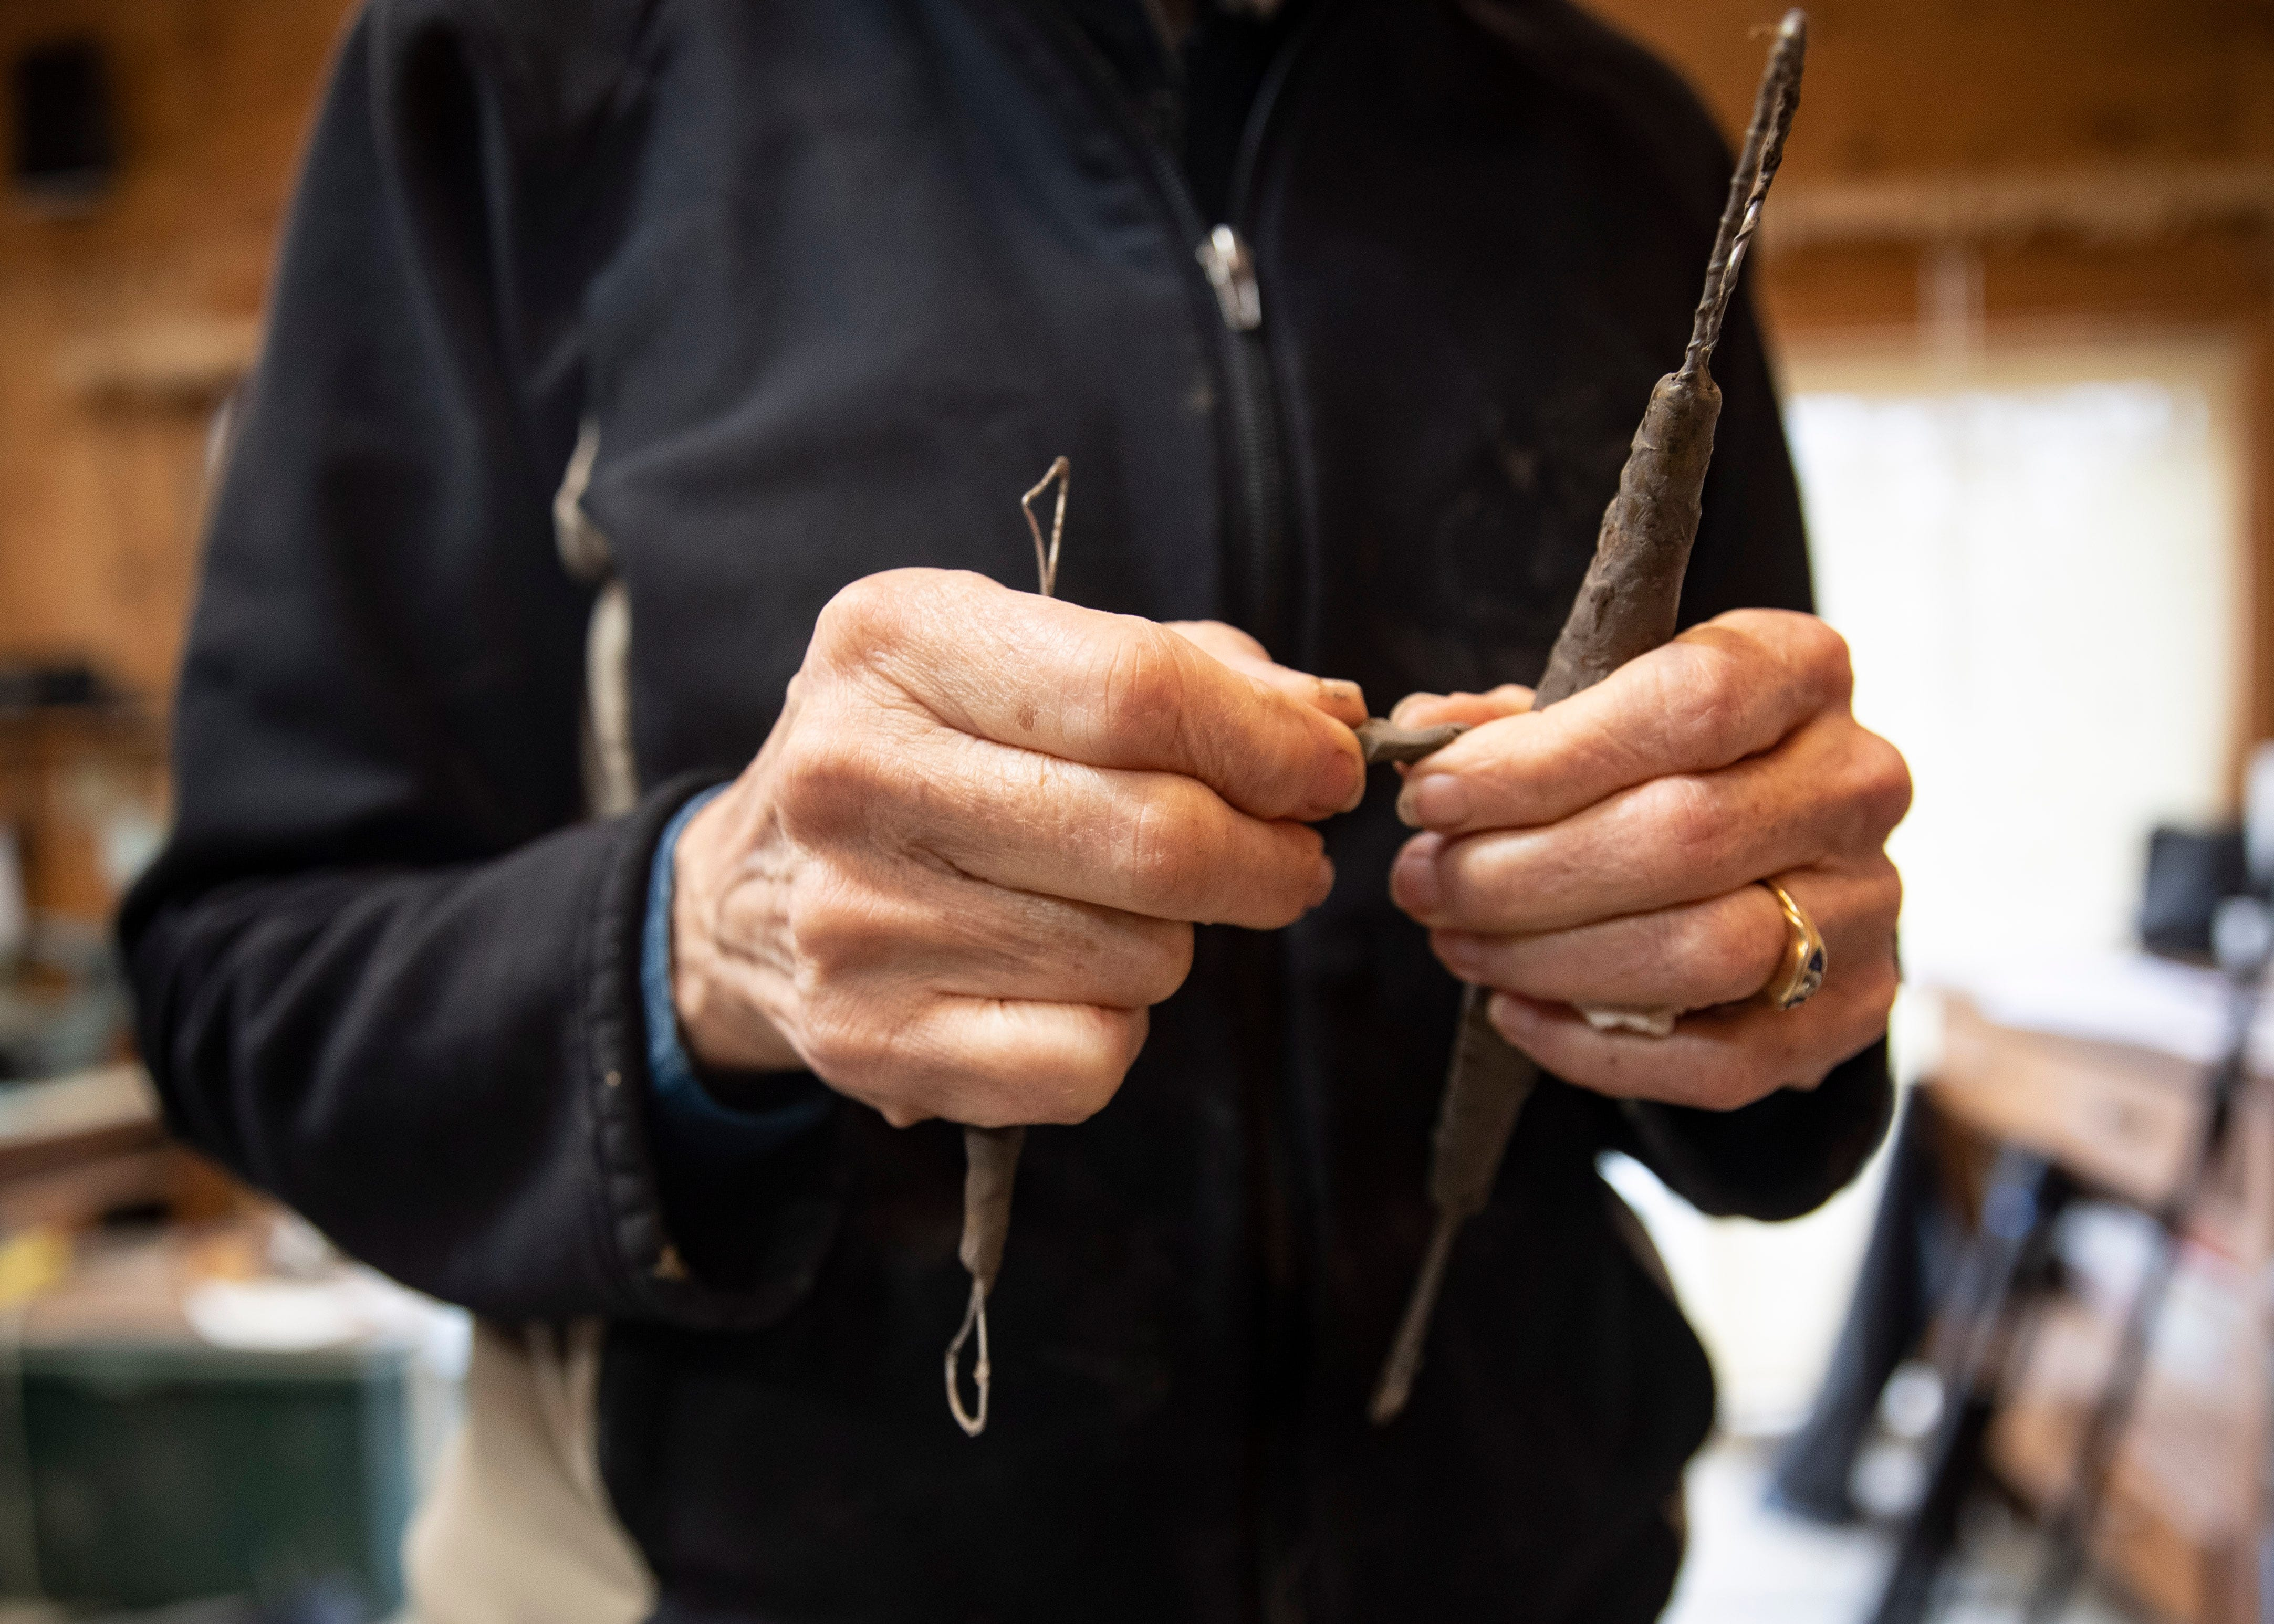 Andrea Lugar of the Lugar Bronze Foundry in Eads, Tenn.,  holds the tools she uses to sculpt the statue of Ida B. Wells, the African American civil rights advocate and journalist who fought against racism, segregation and lynching, at her home studio on Friday, March 15, 2021.